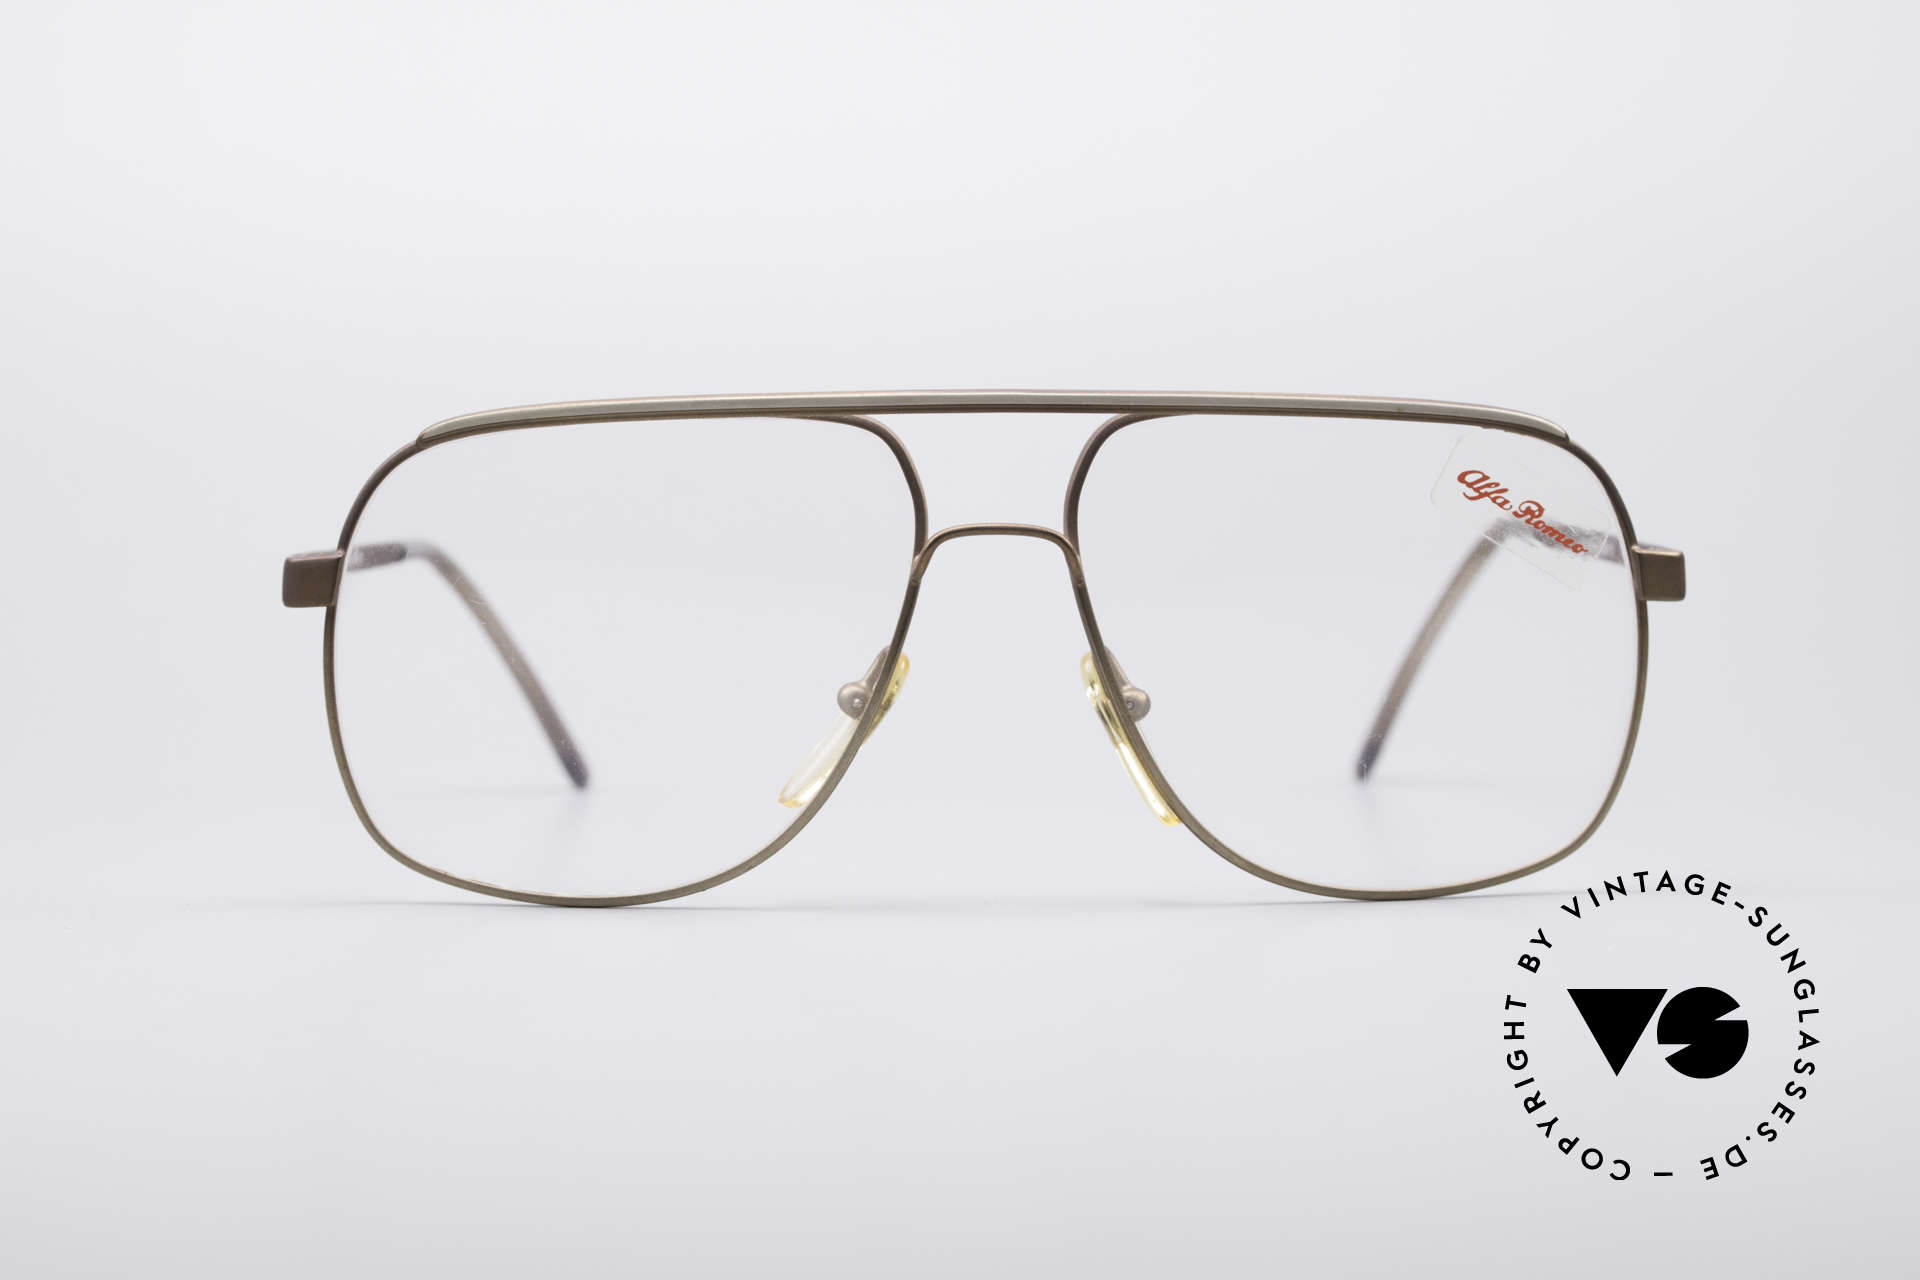 Alfa Romeo 882-21 80's Vintage Glasses, palpable superior crafting from Florence (from 1987), Made for Men